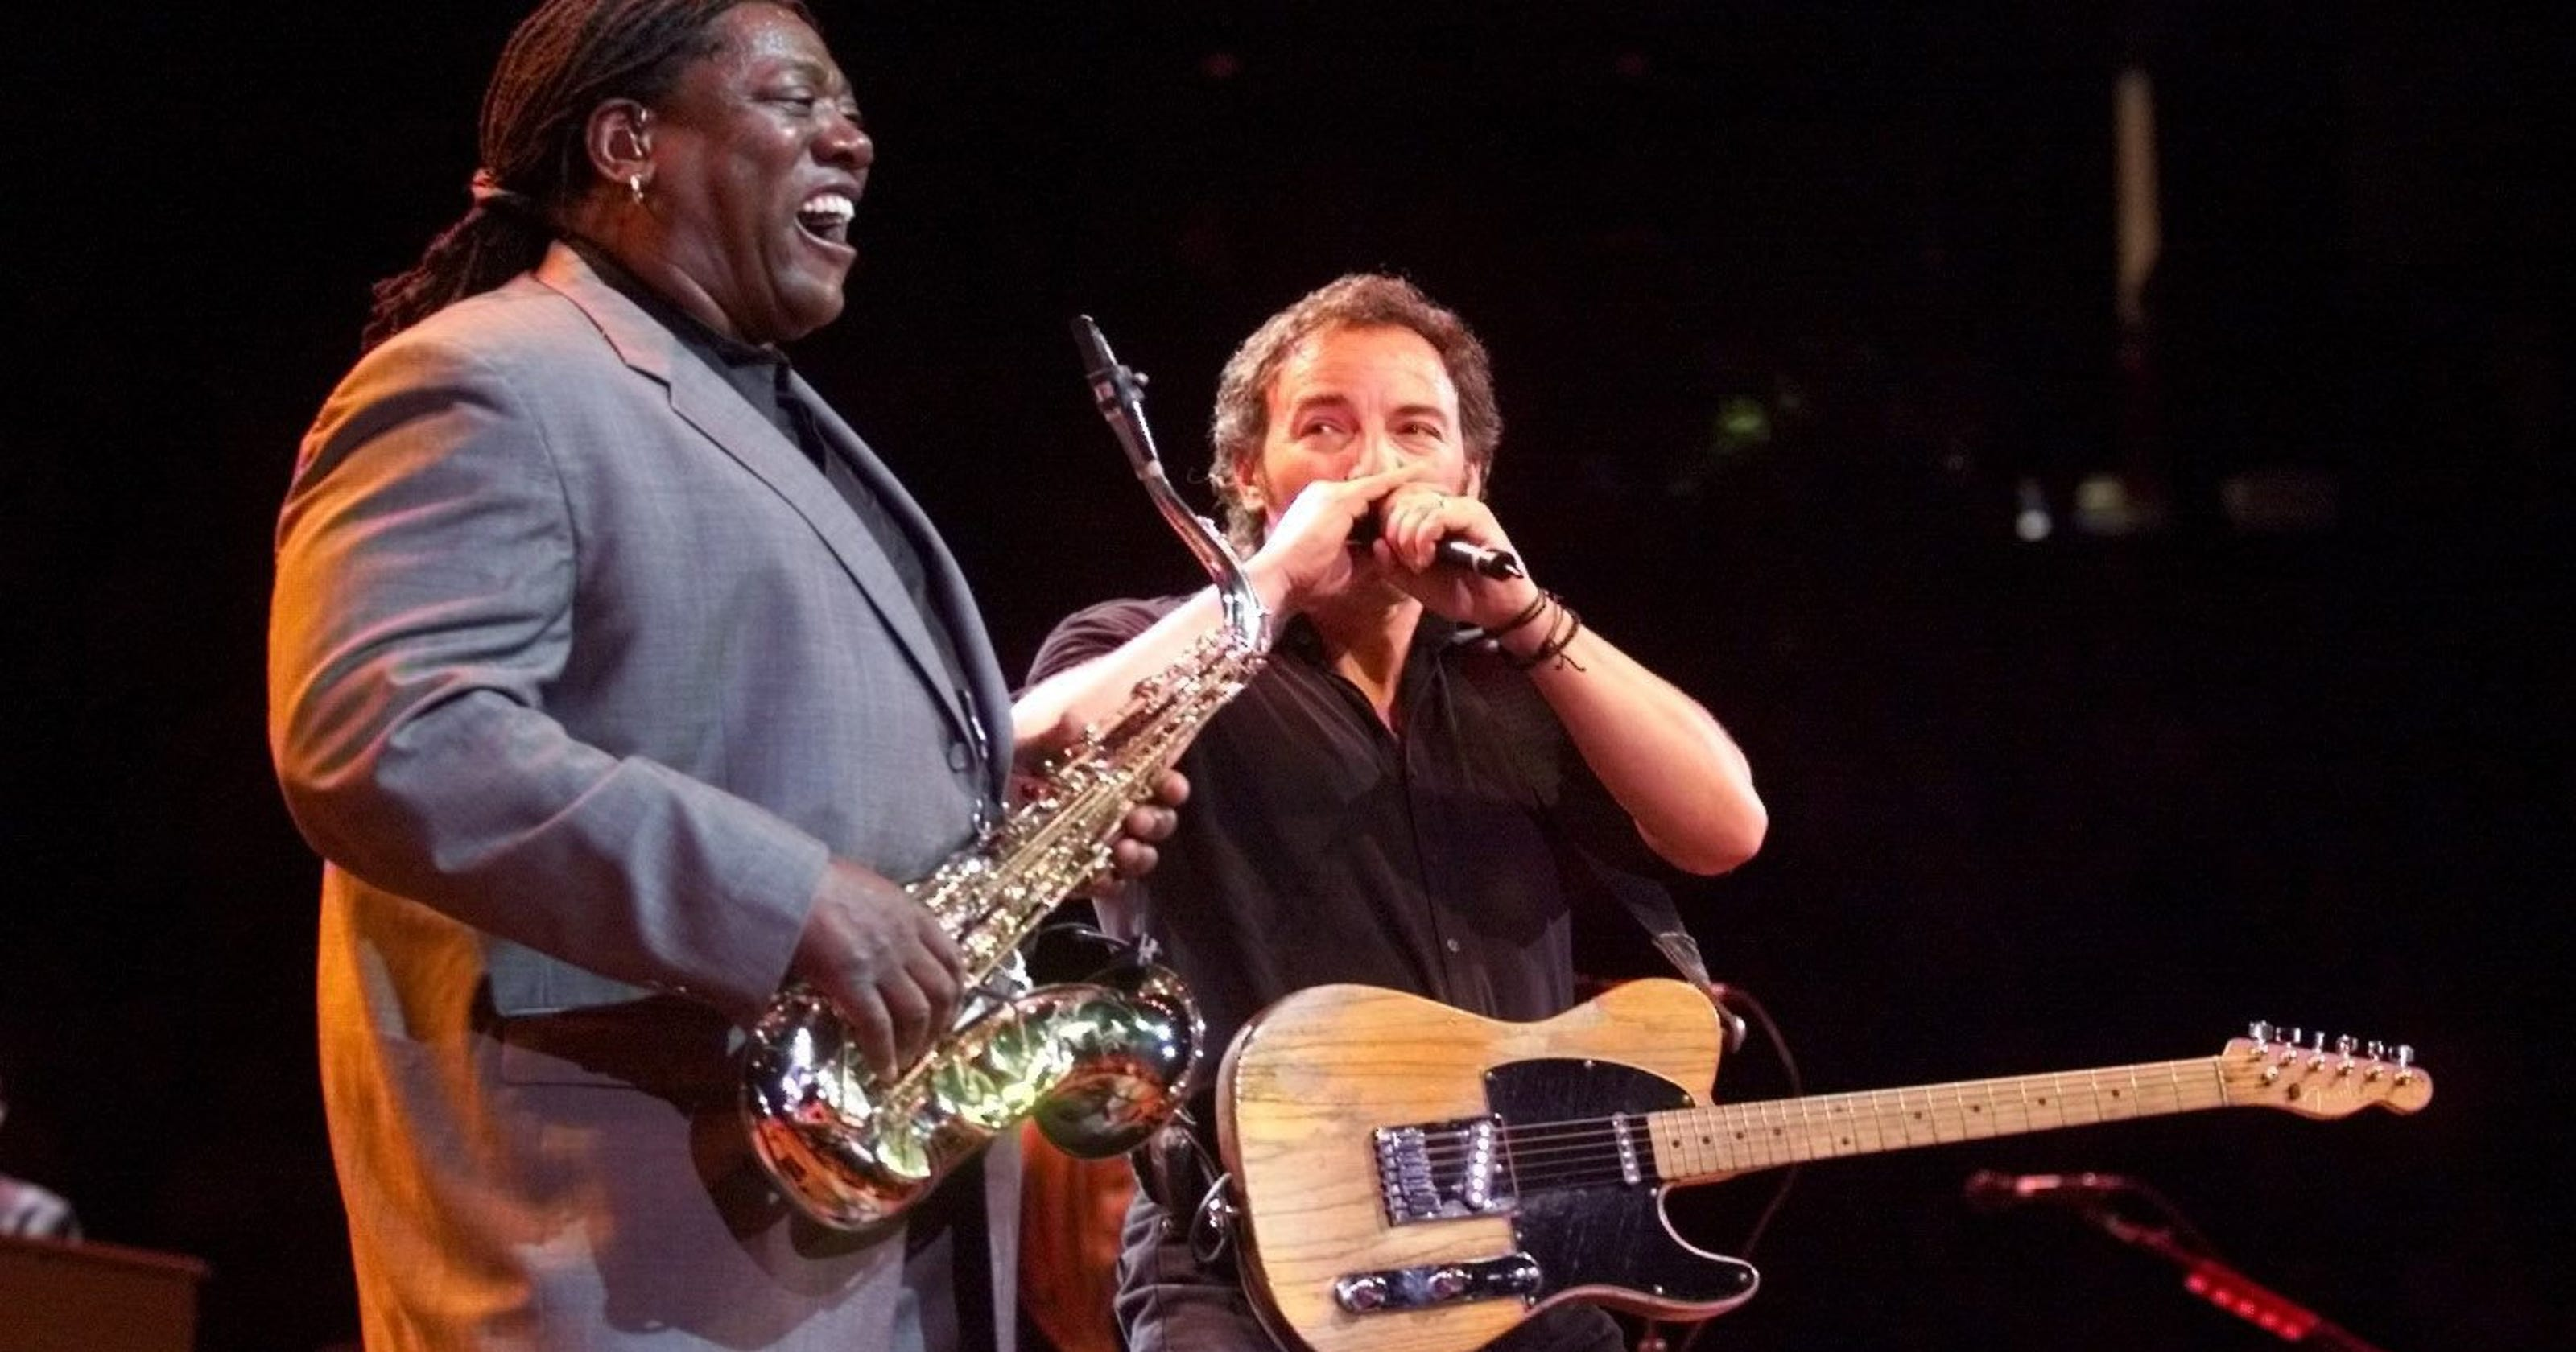 Springsteen Releases Last Clarence Clemons Tour Show